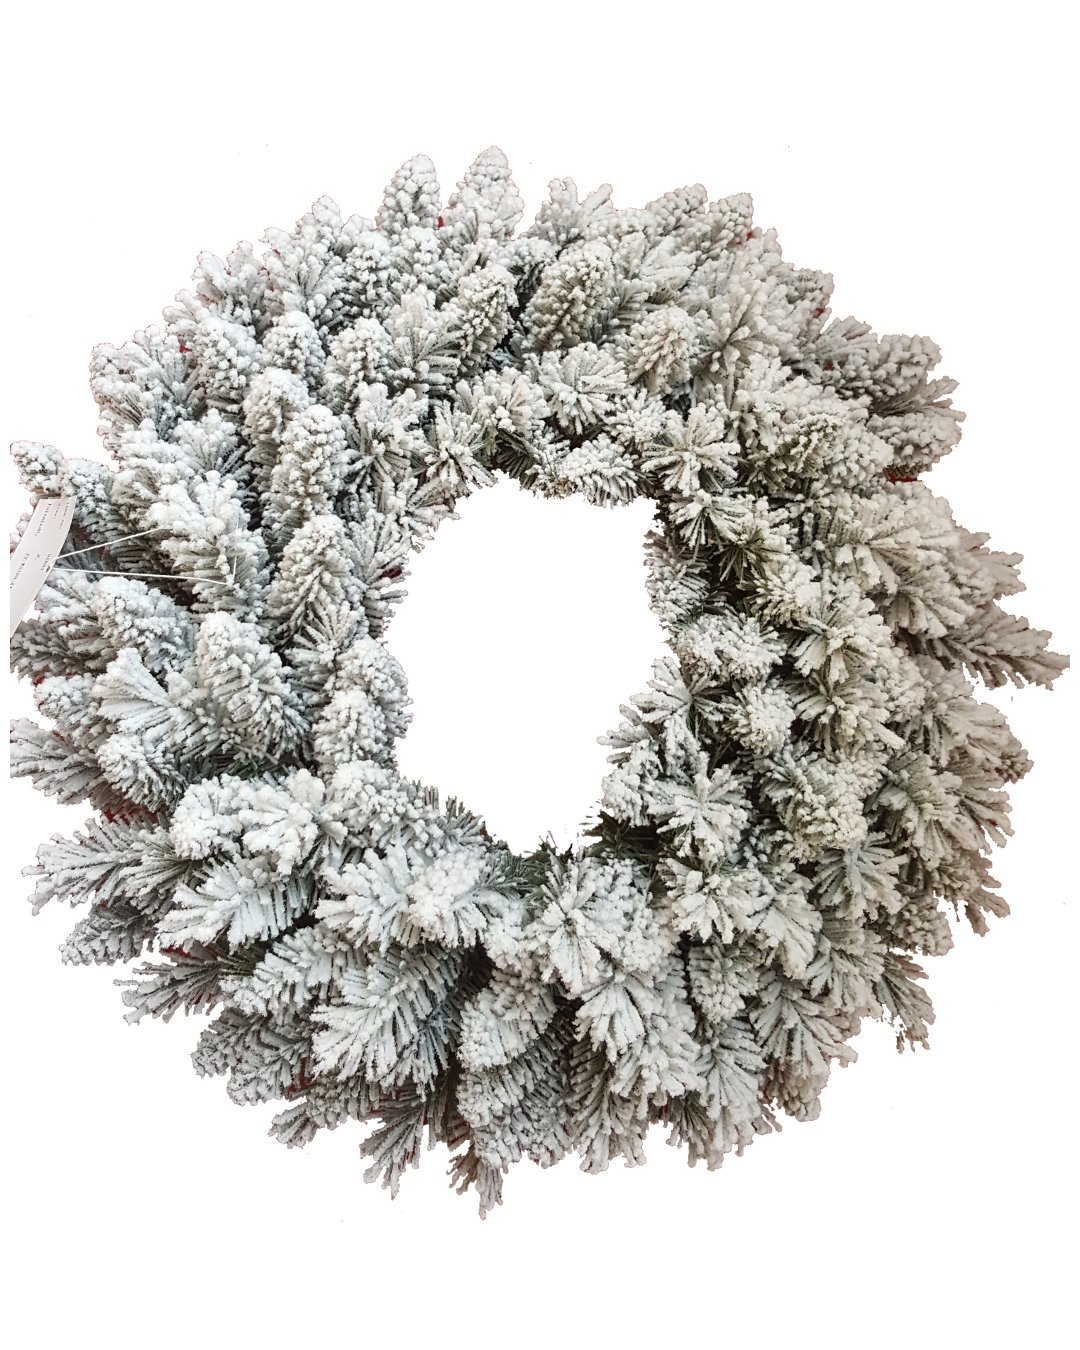 KING OF CHRISTMAS 36'' Pre-Lit Jr Prince Flock Wreath With 150 Warm White LED Lights